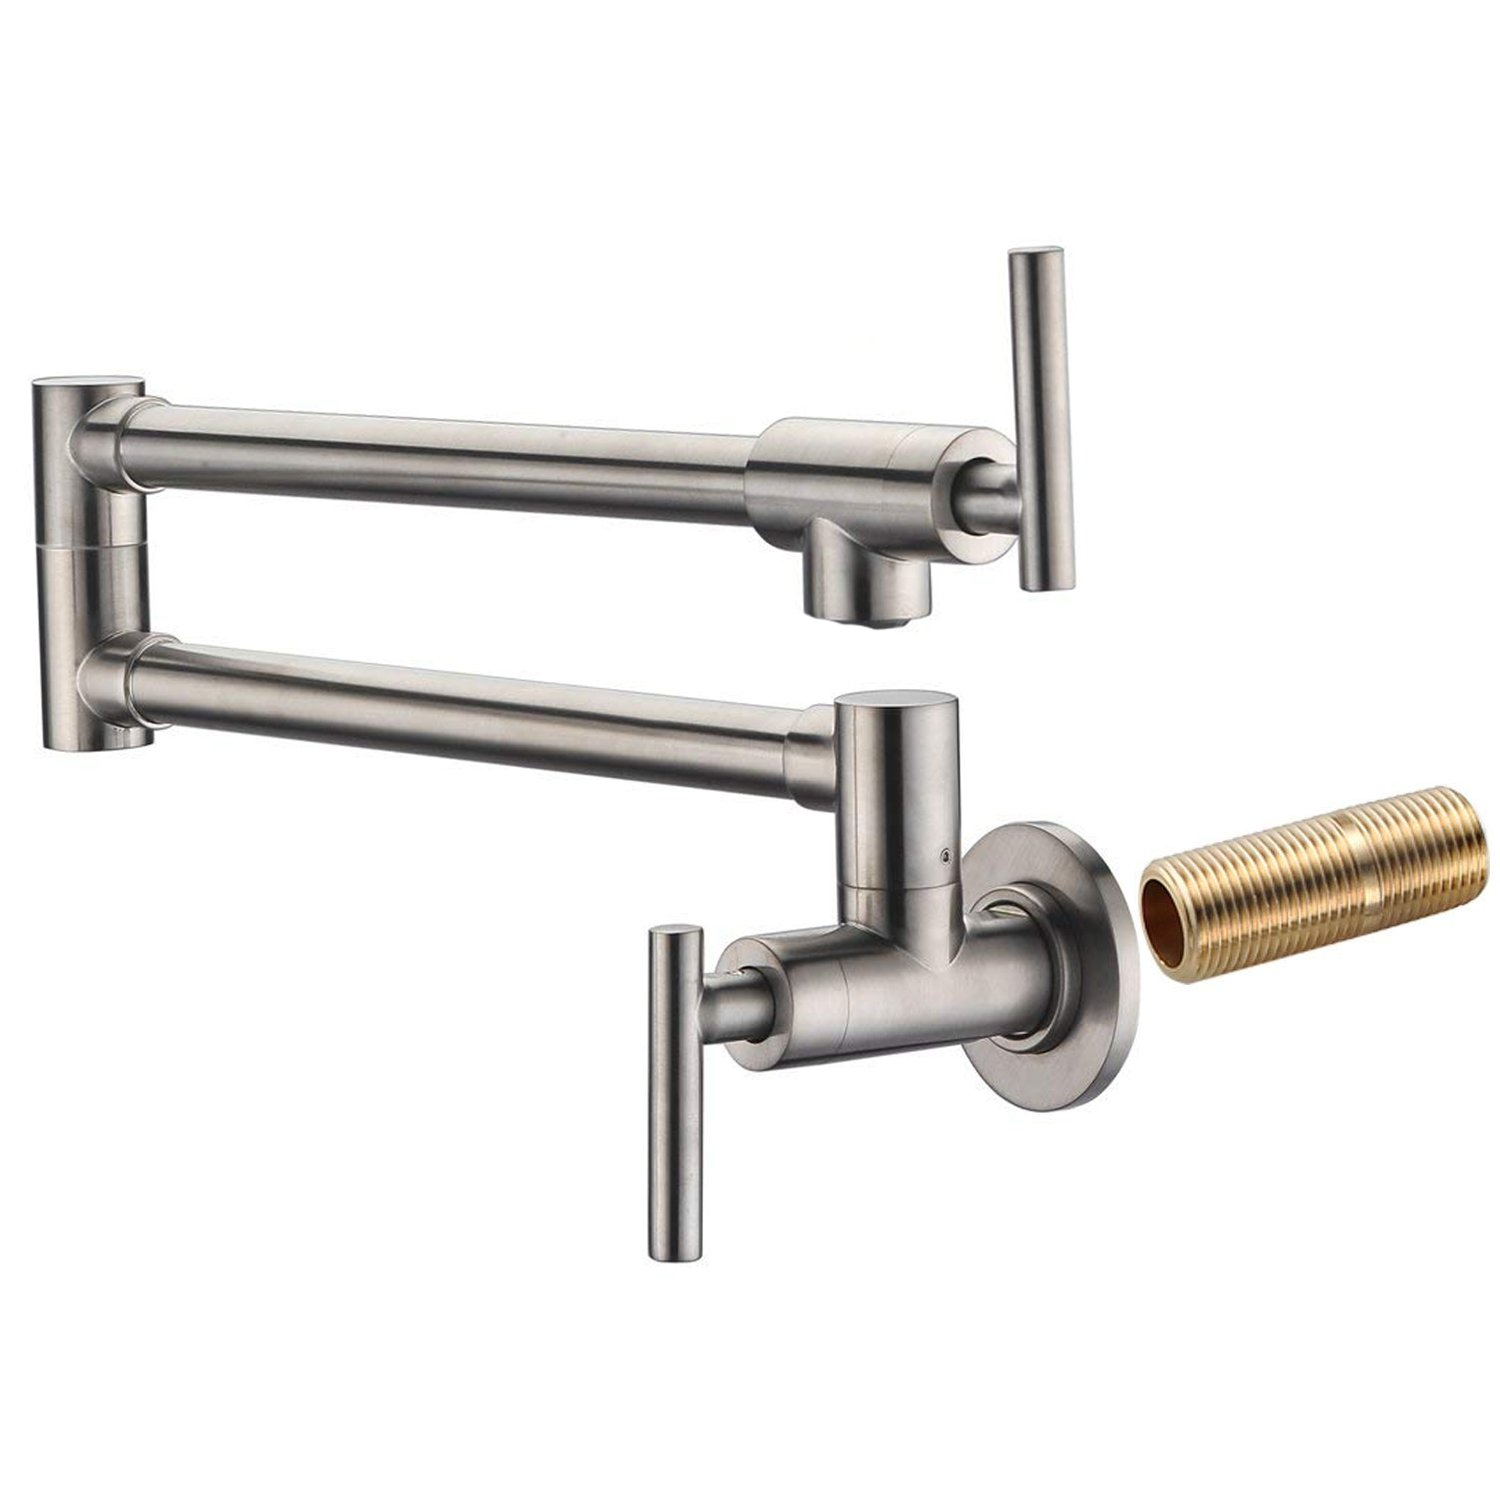 SUMERAIN Pot Filler Faucet Wall Mount,Brushed Nickel Finish and Dual Swing Joints Design by SUMERAIN